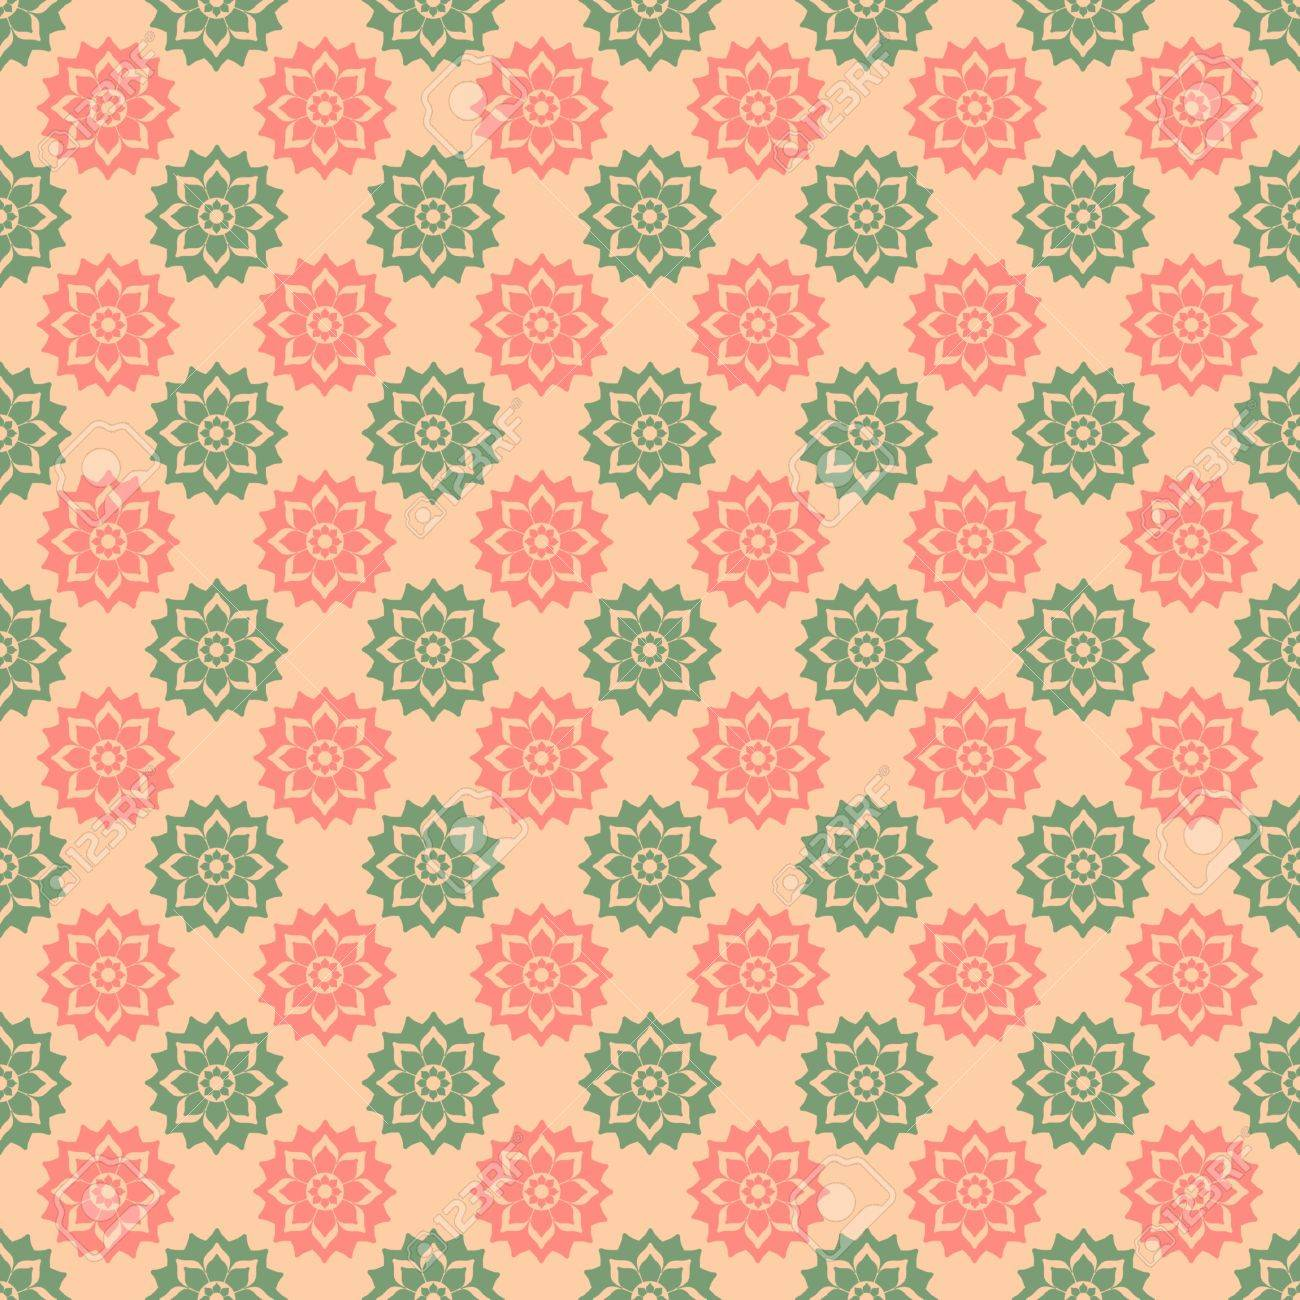 Pink & Green Floral Medallions Stock Photo - 17226819